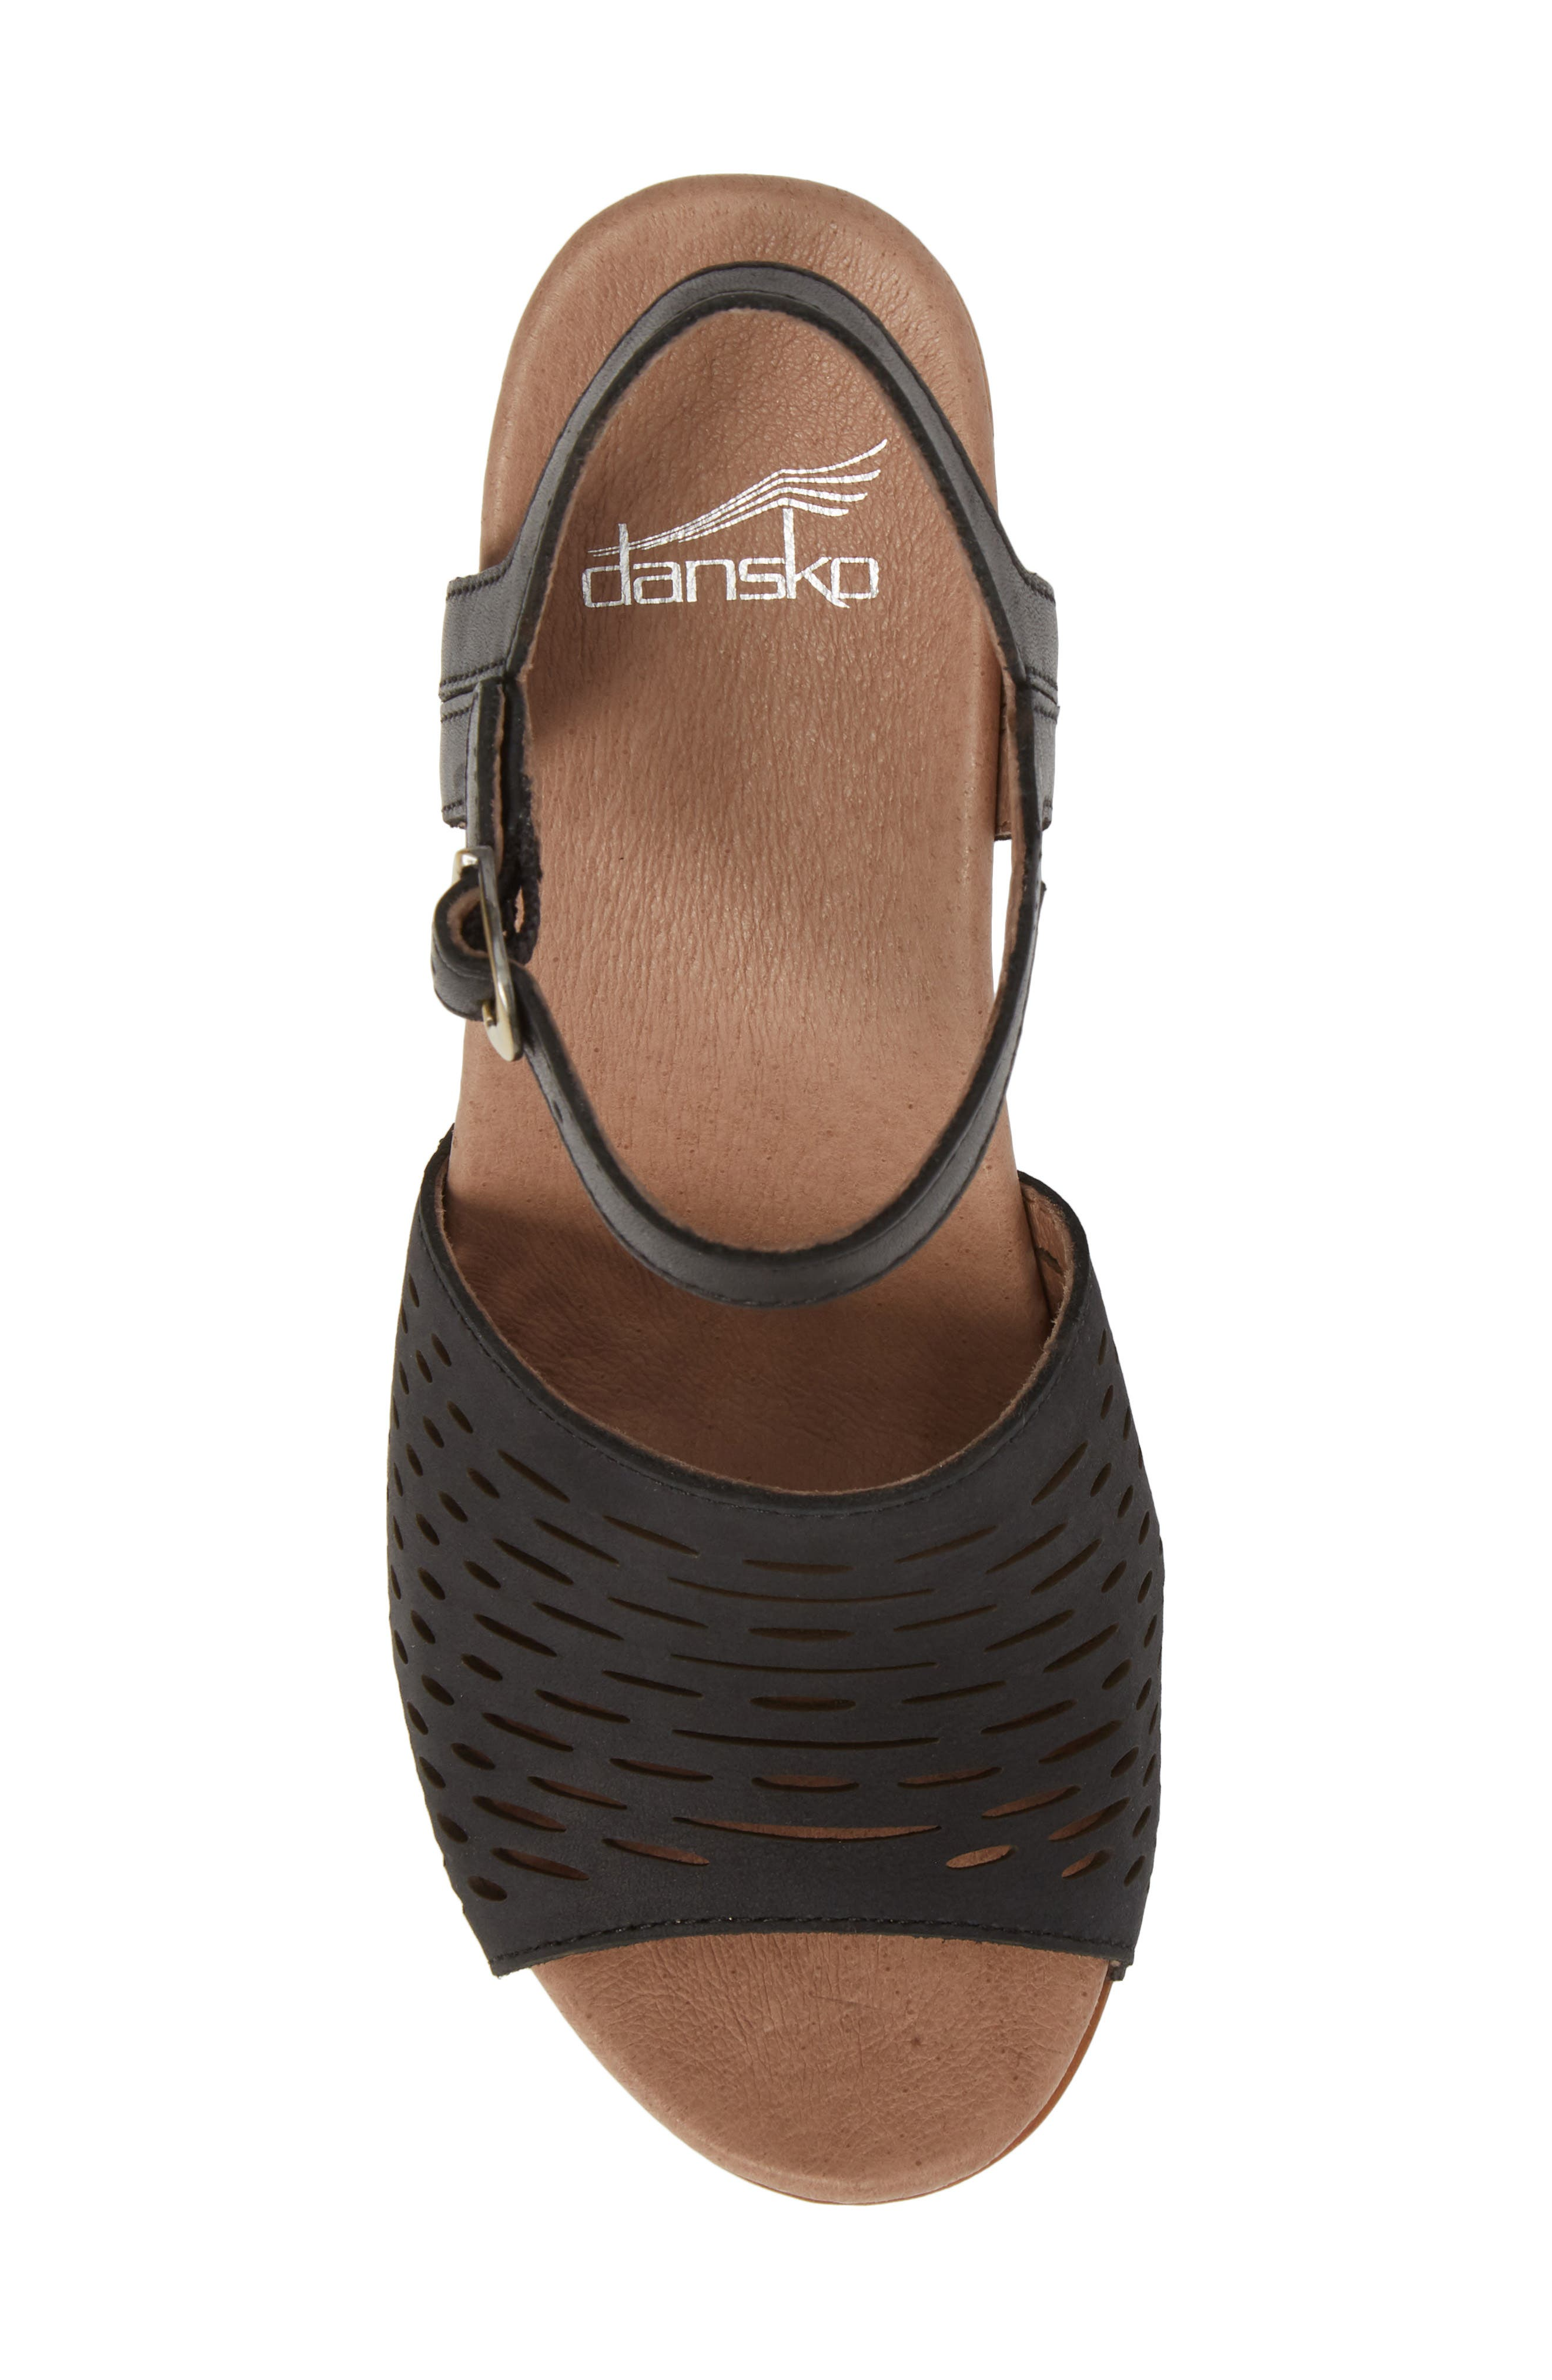 Denita Block Heel Sandal,                             Alternate thumbnail 5, color,                             Black Milled Nubuck Leather